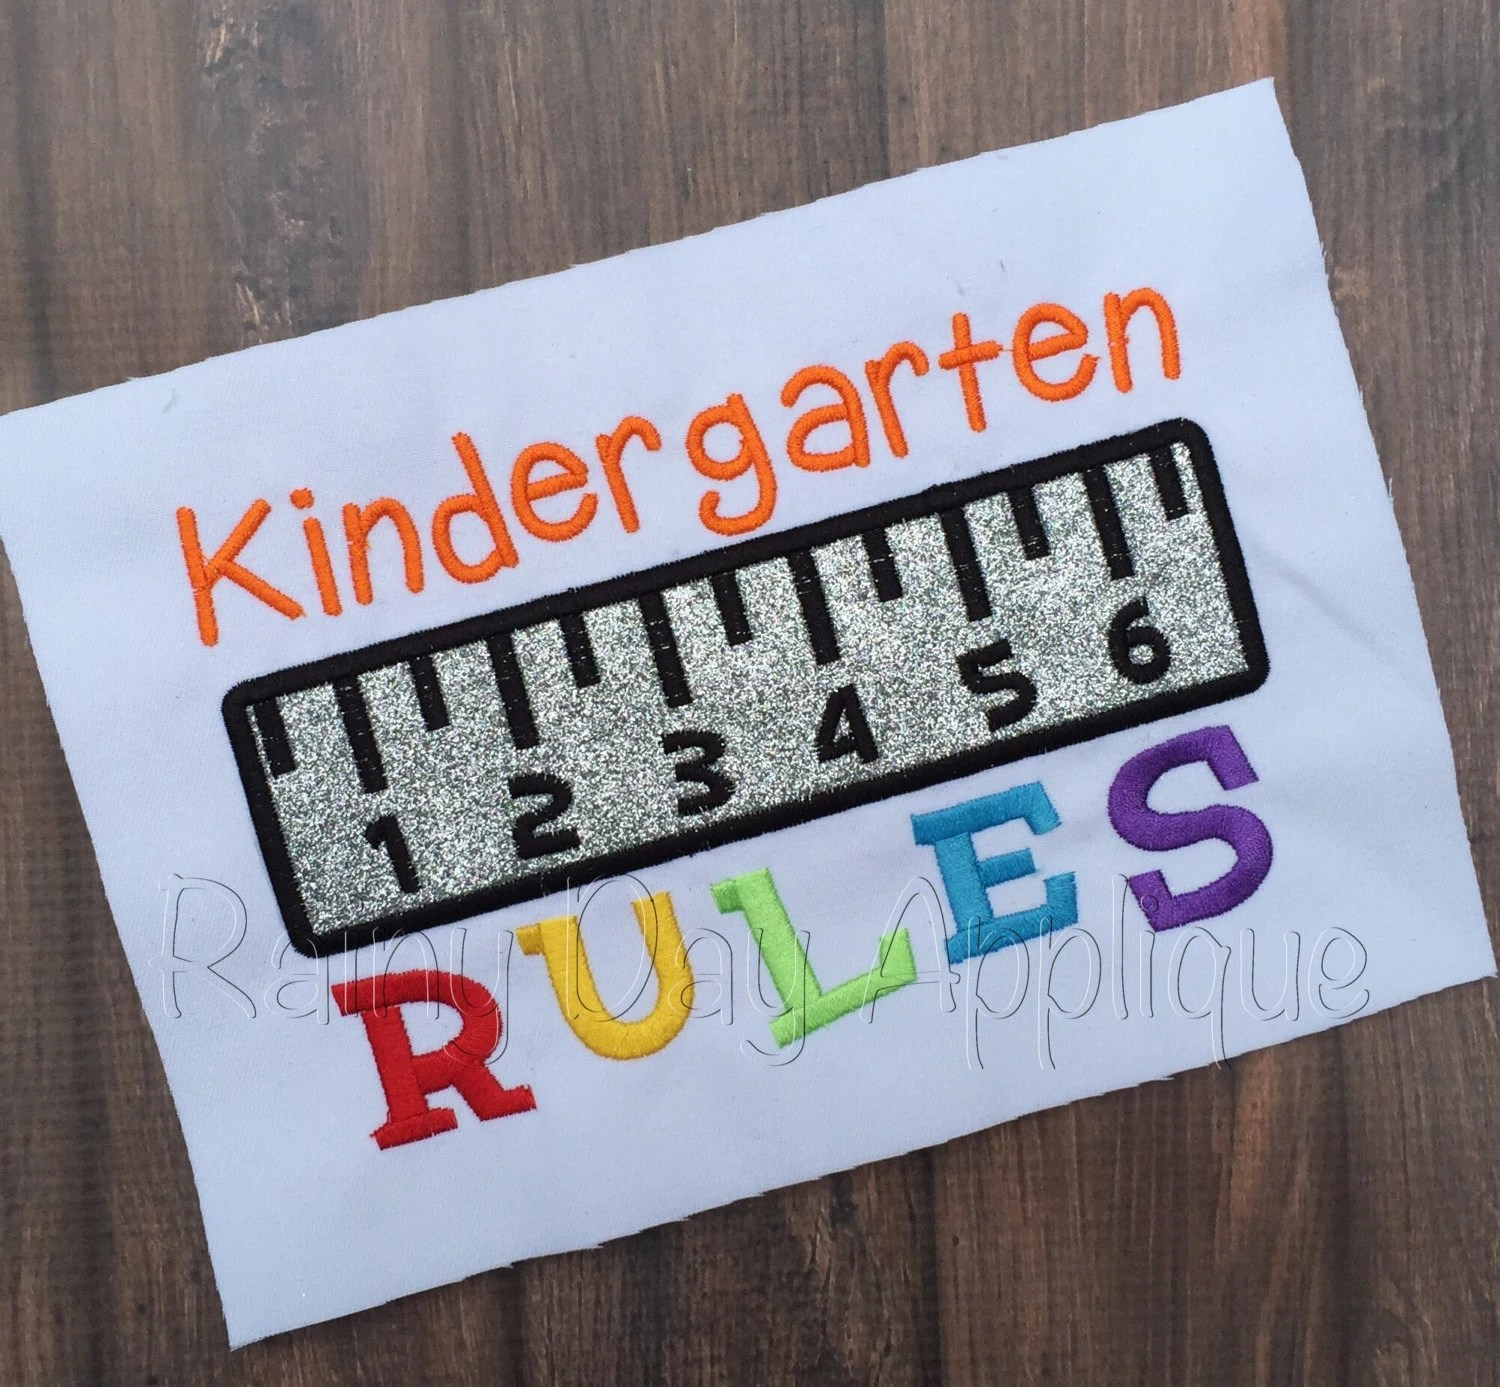 Kindergarten Applique Design Kindergarten Rules Applique